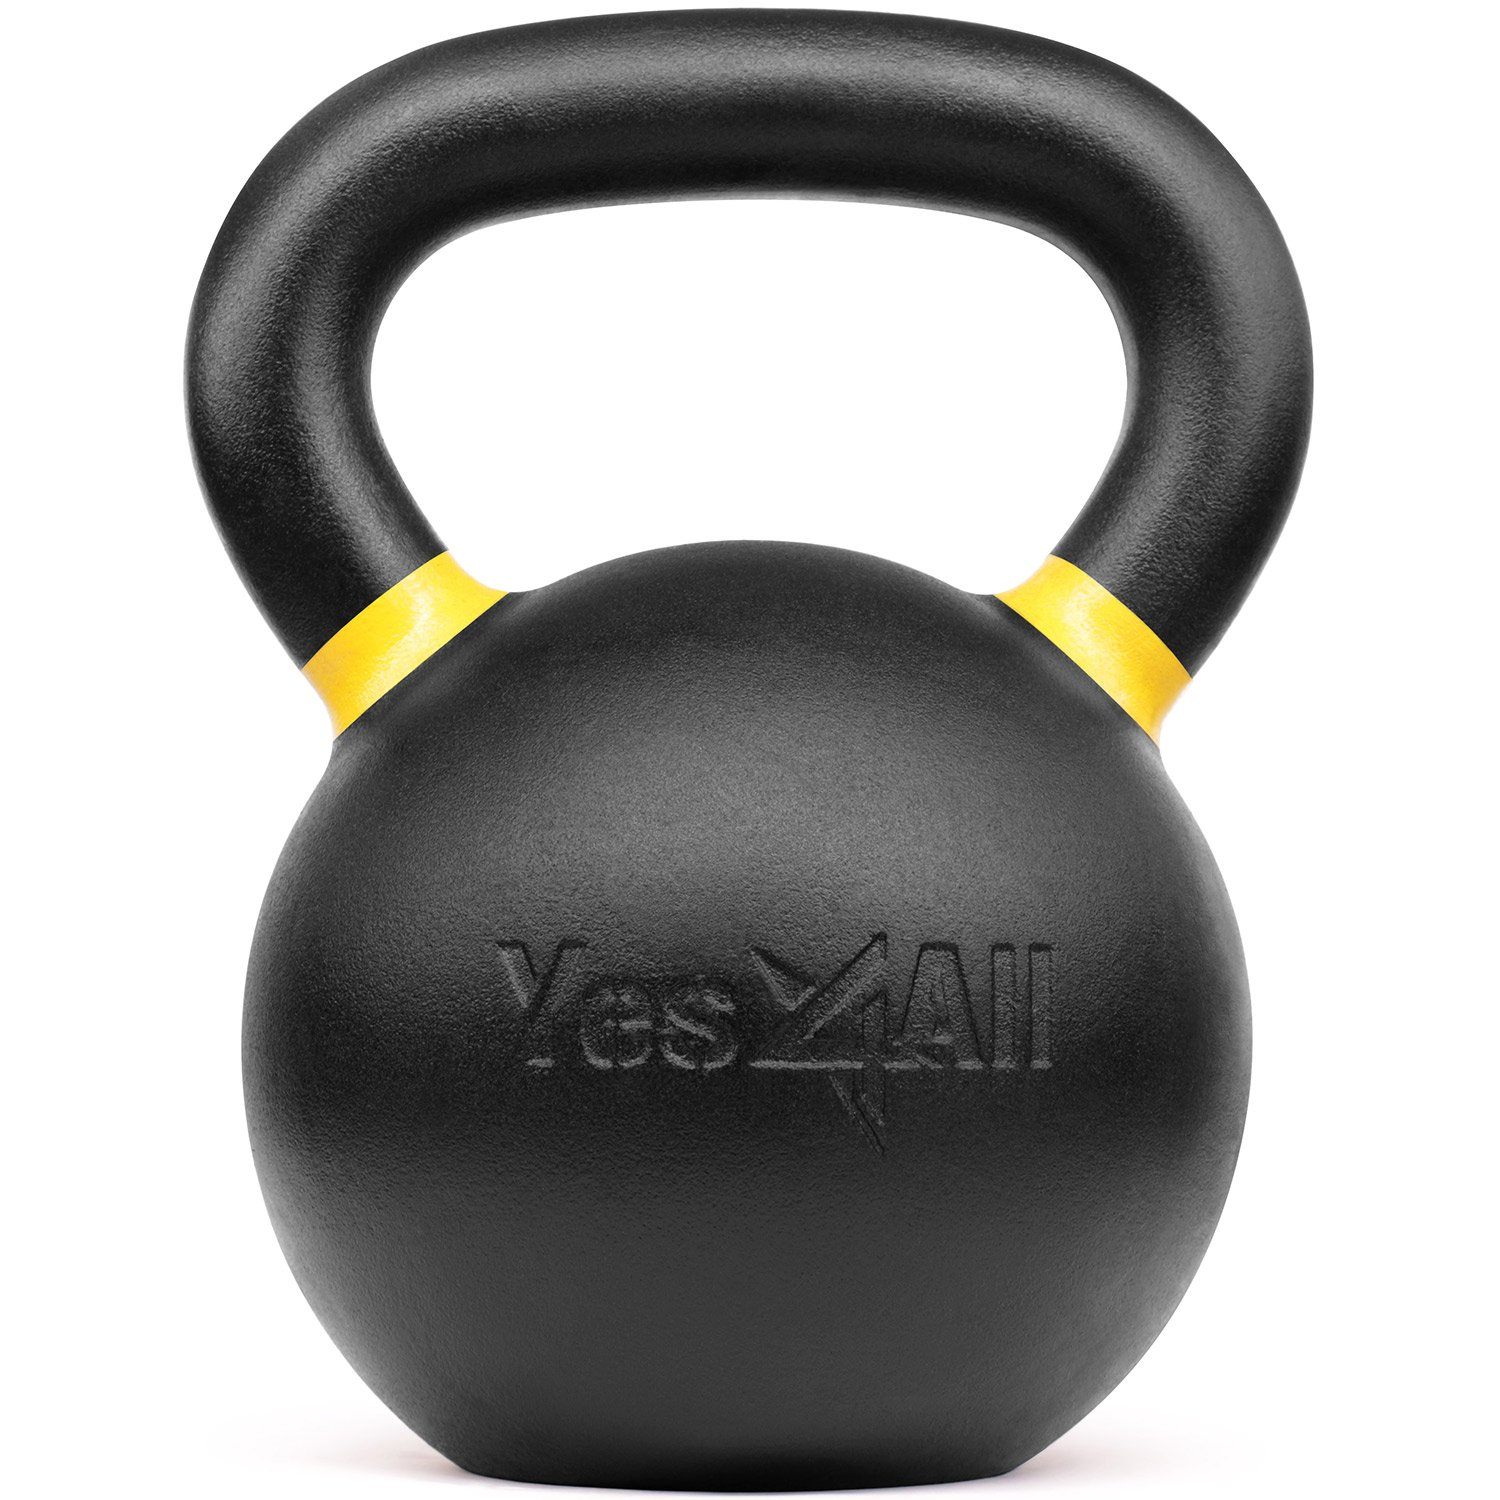 Yes4All Powder Coat Kettlebells 4, 6, 8, 10, 12, 14, 16, 20, 24, 32, 40kg